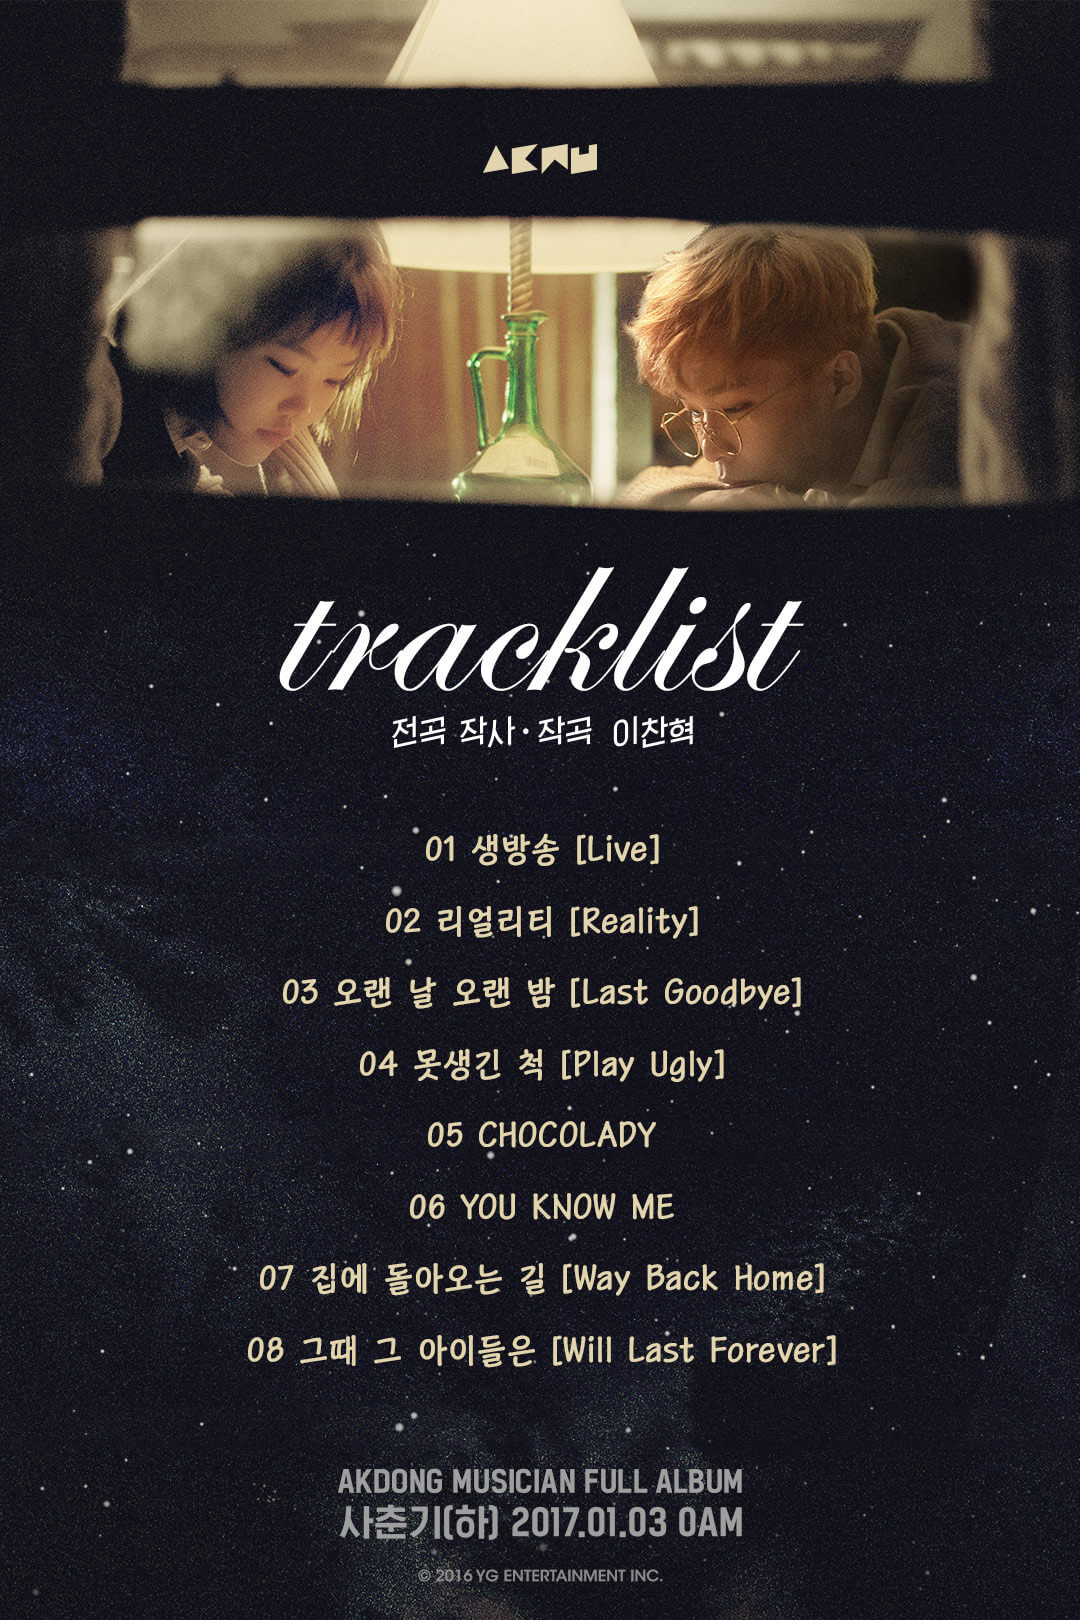 Akdong Musician Reveals Their Impressive Tracklist For Comeback